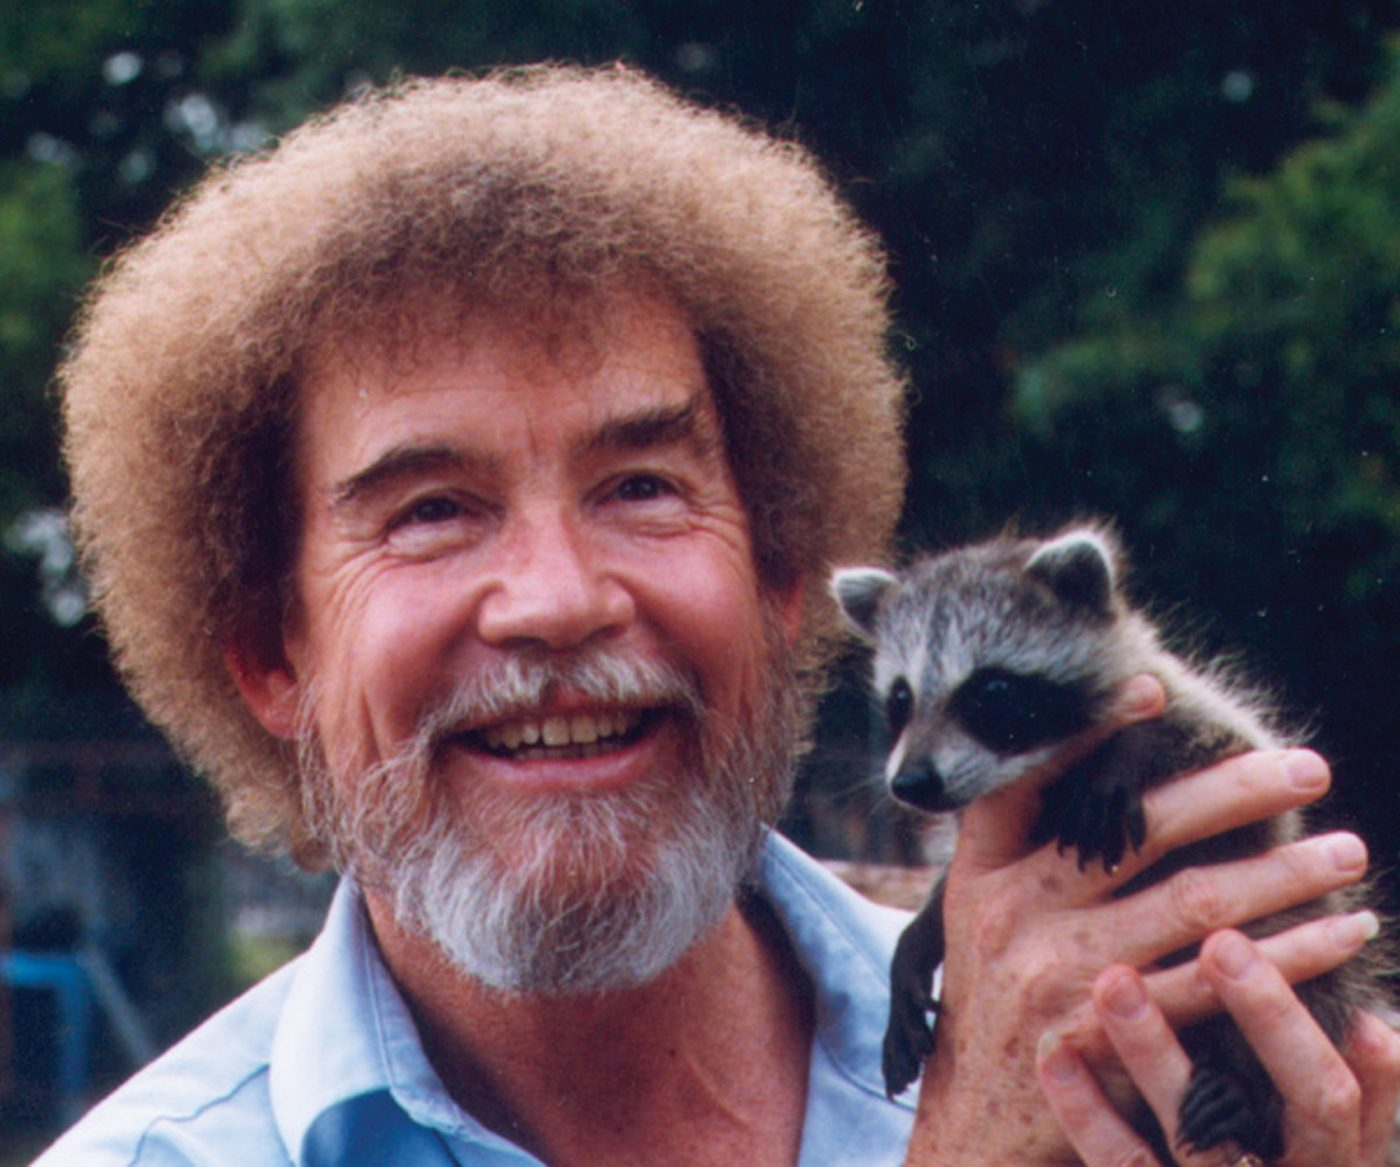 Image: Bob Ross holding a baby racoon